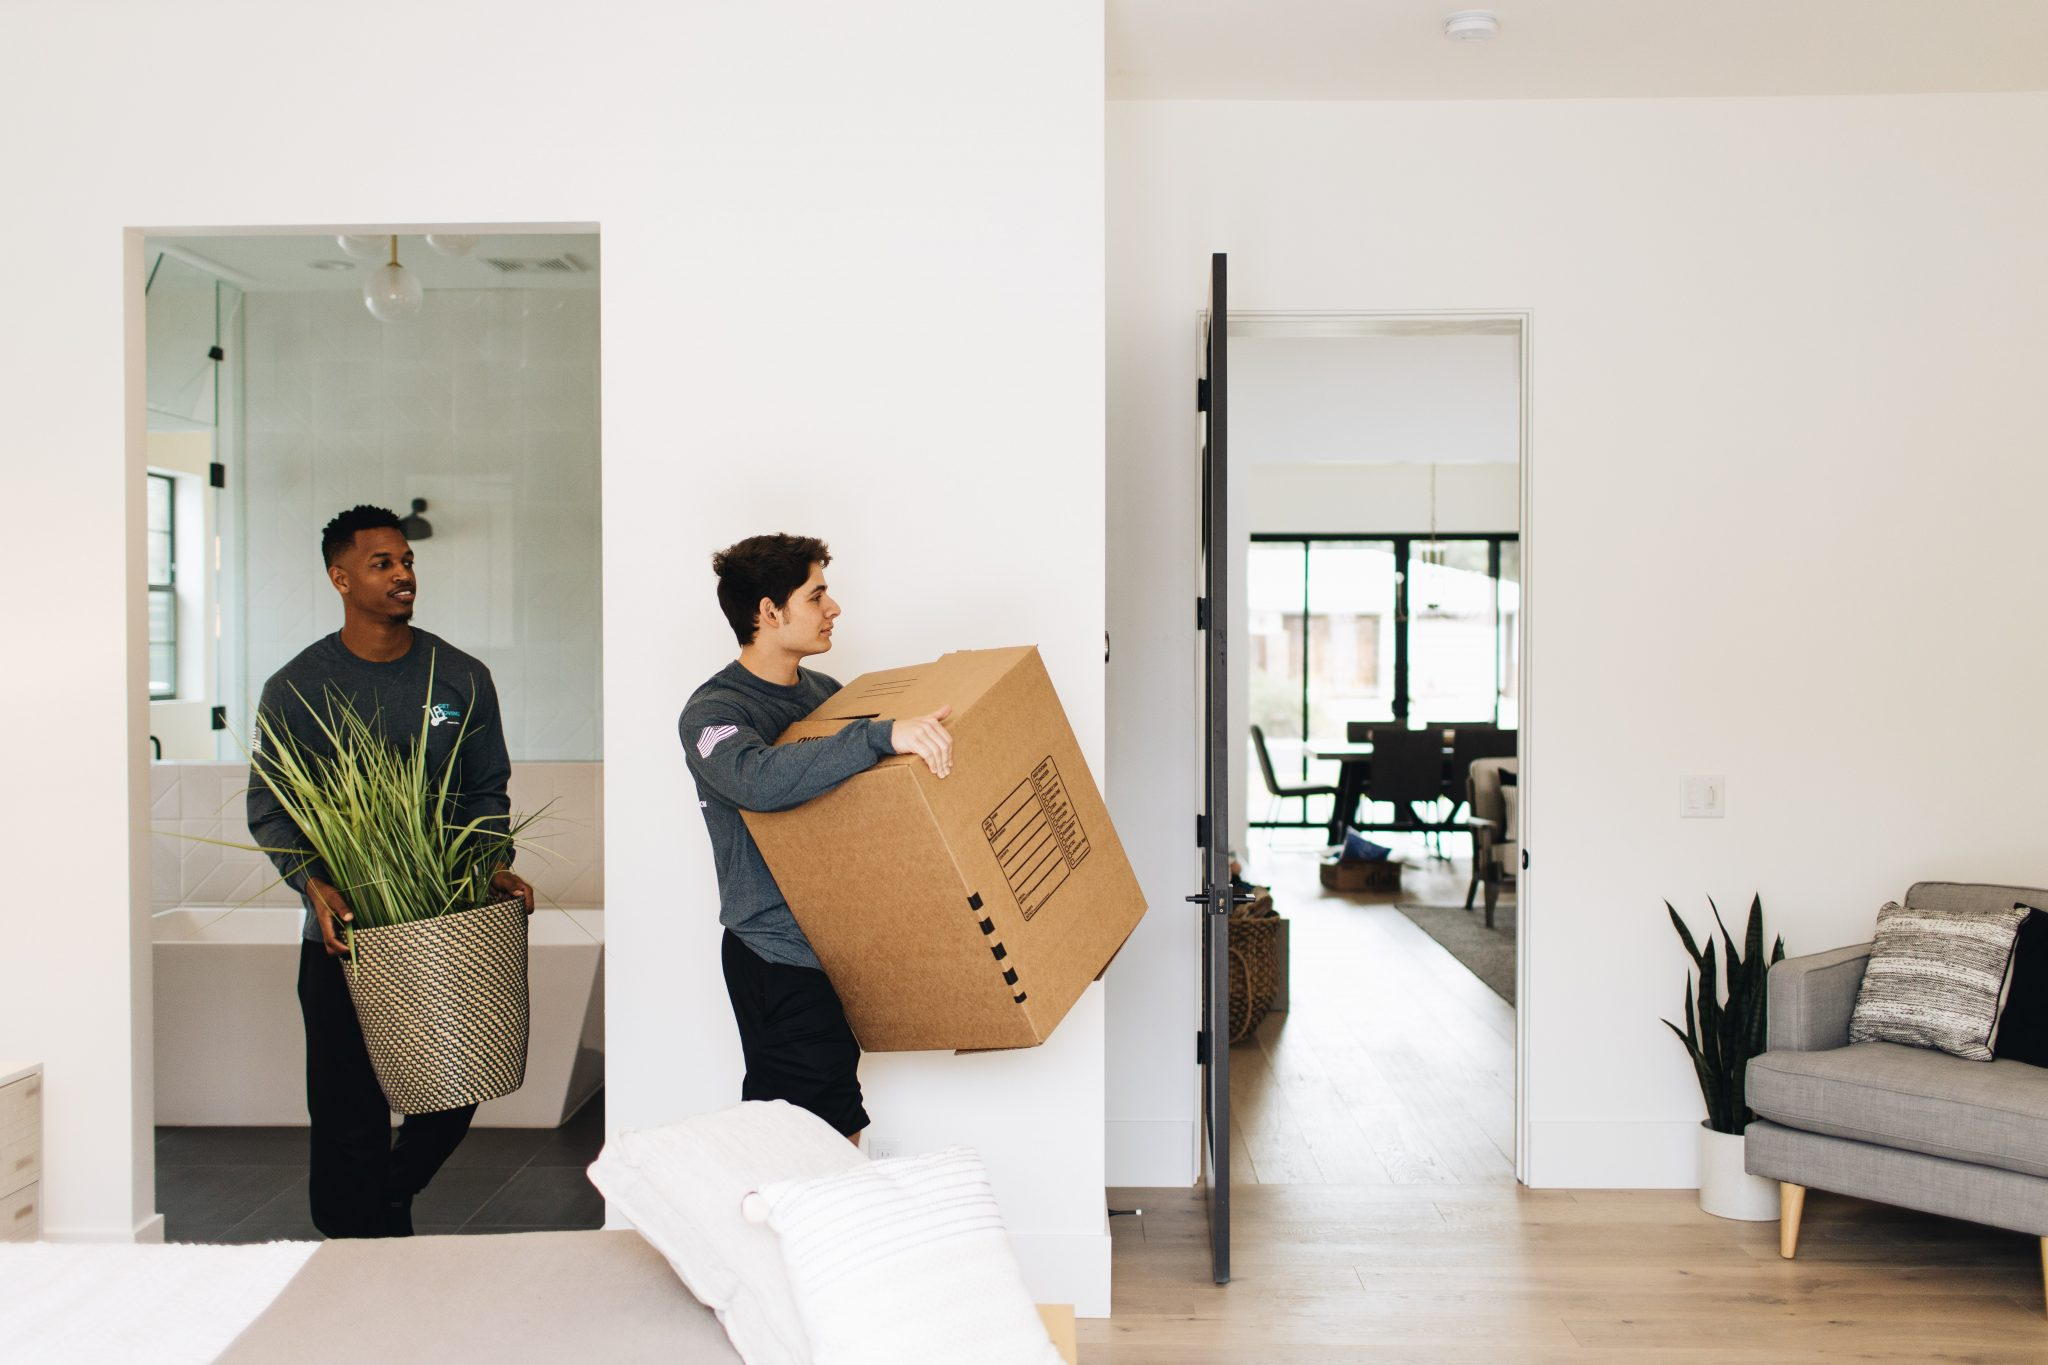 Image: Get Moving crew on a residential move